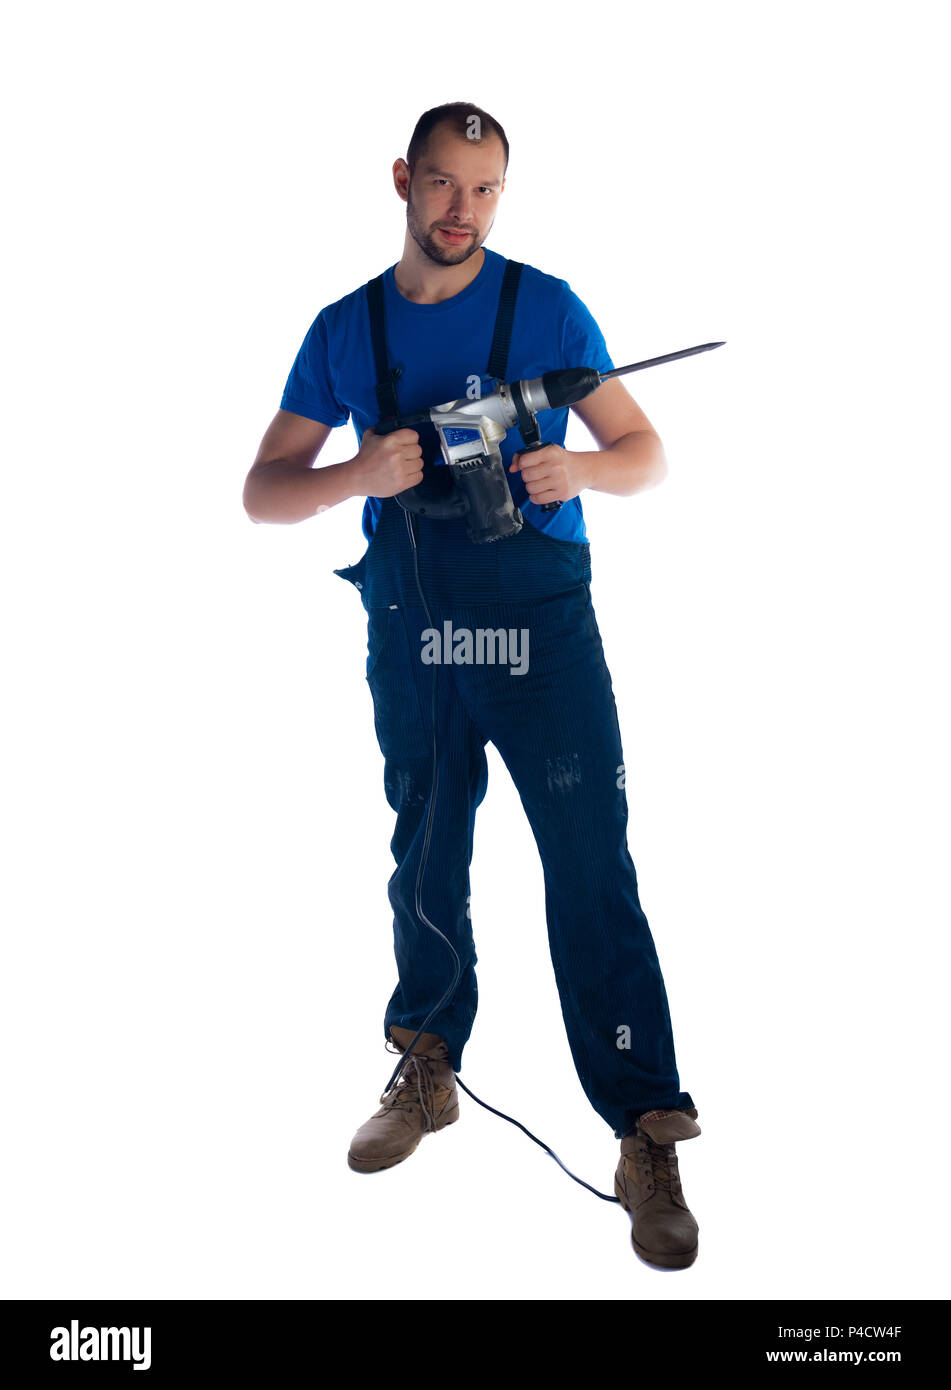 Professional handyman isolated on white holding and showing his drill - Stock Image